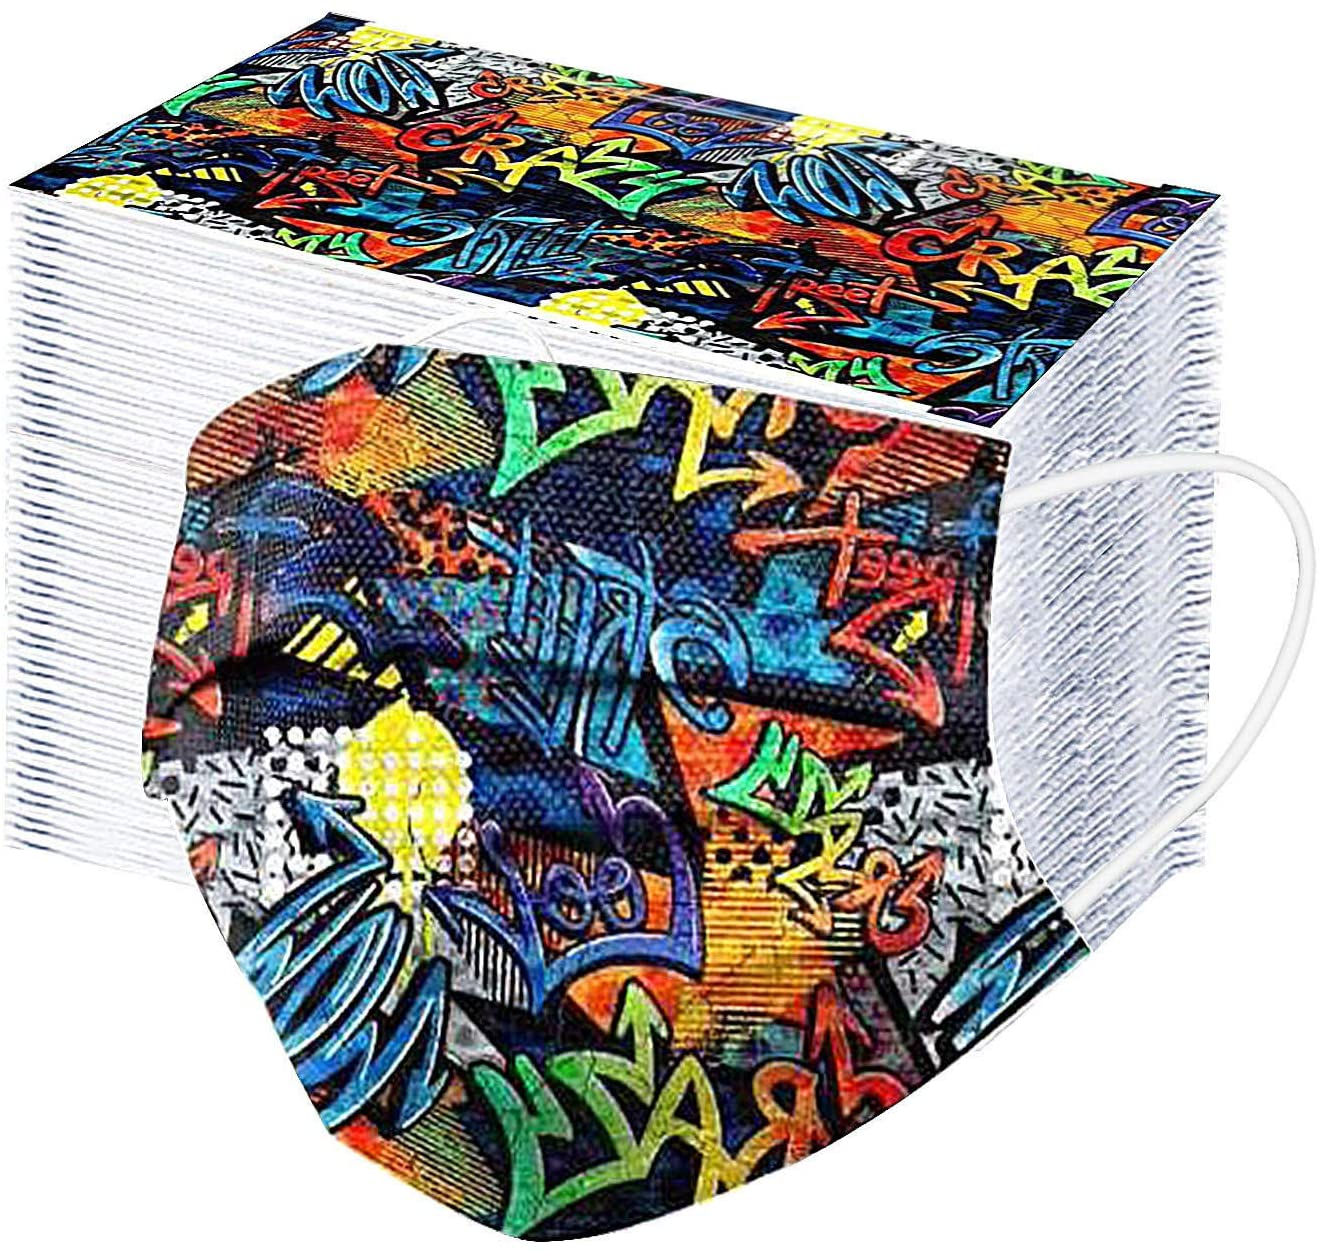 Disposable Face_mask Kids Face Bandanas 3 Ply Breathable Face Protection Color Graffiti Printed Mouth Bandanas Elastic Earloop Face Covering for Child Boy Girl